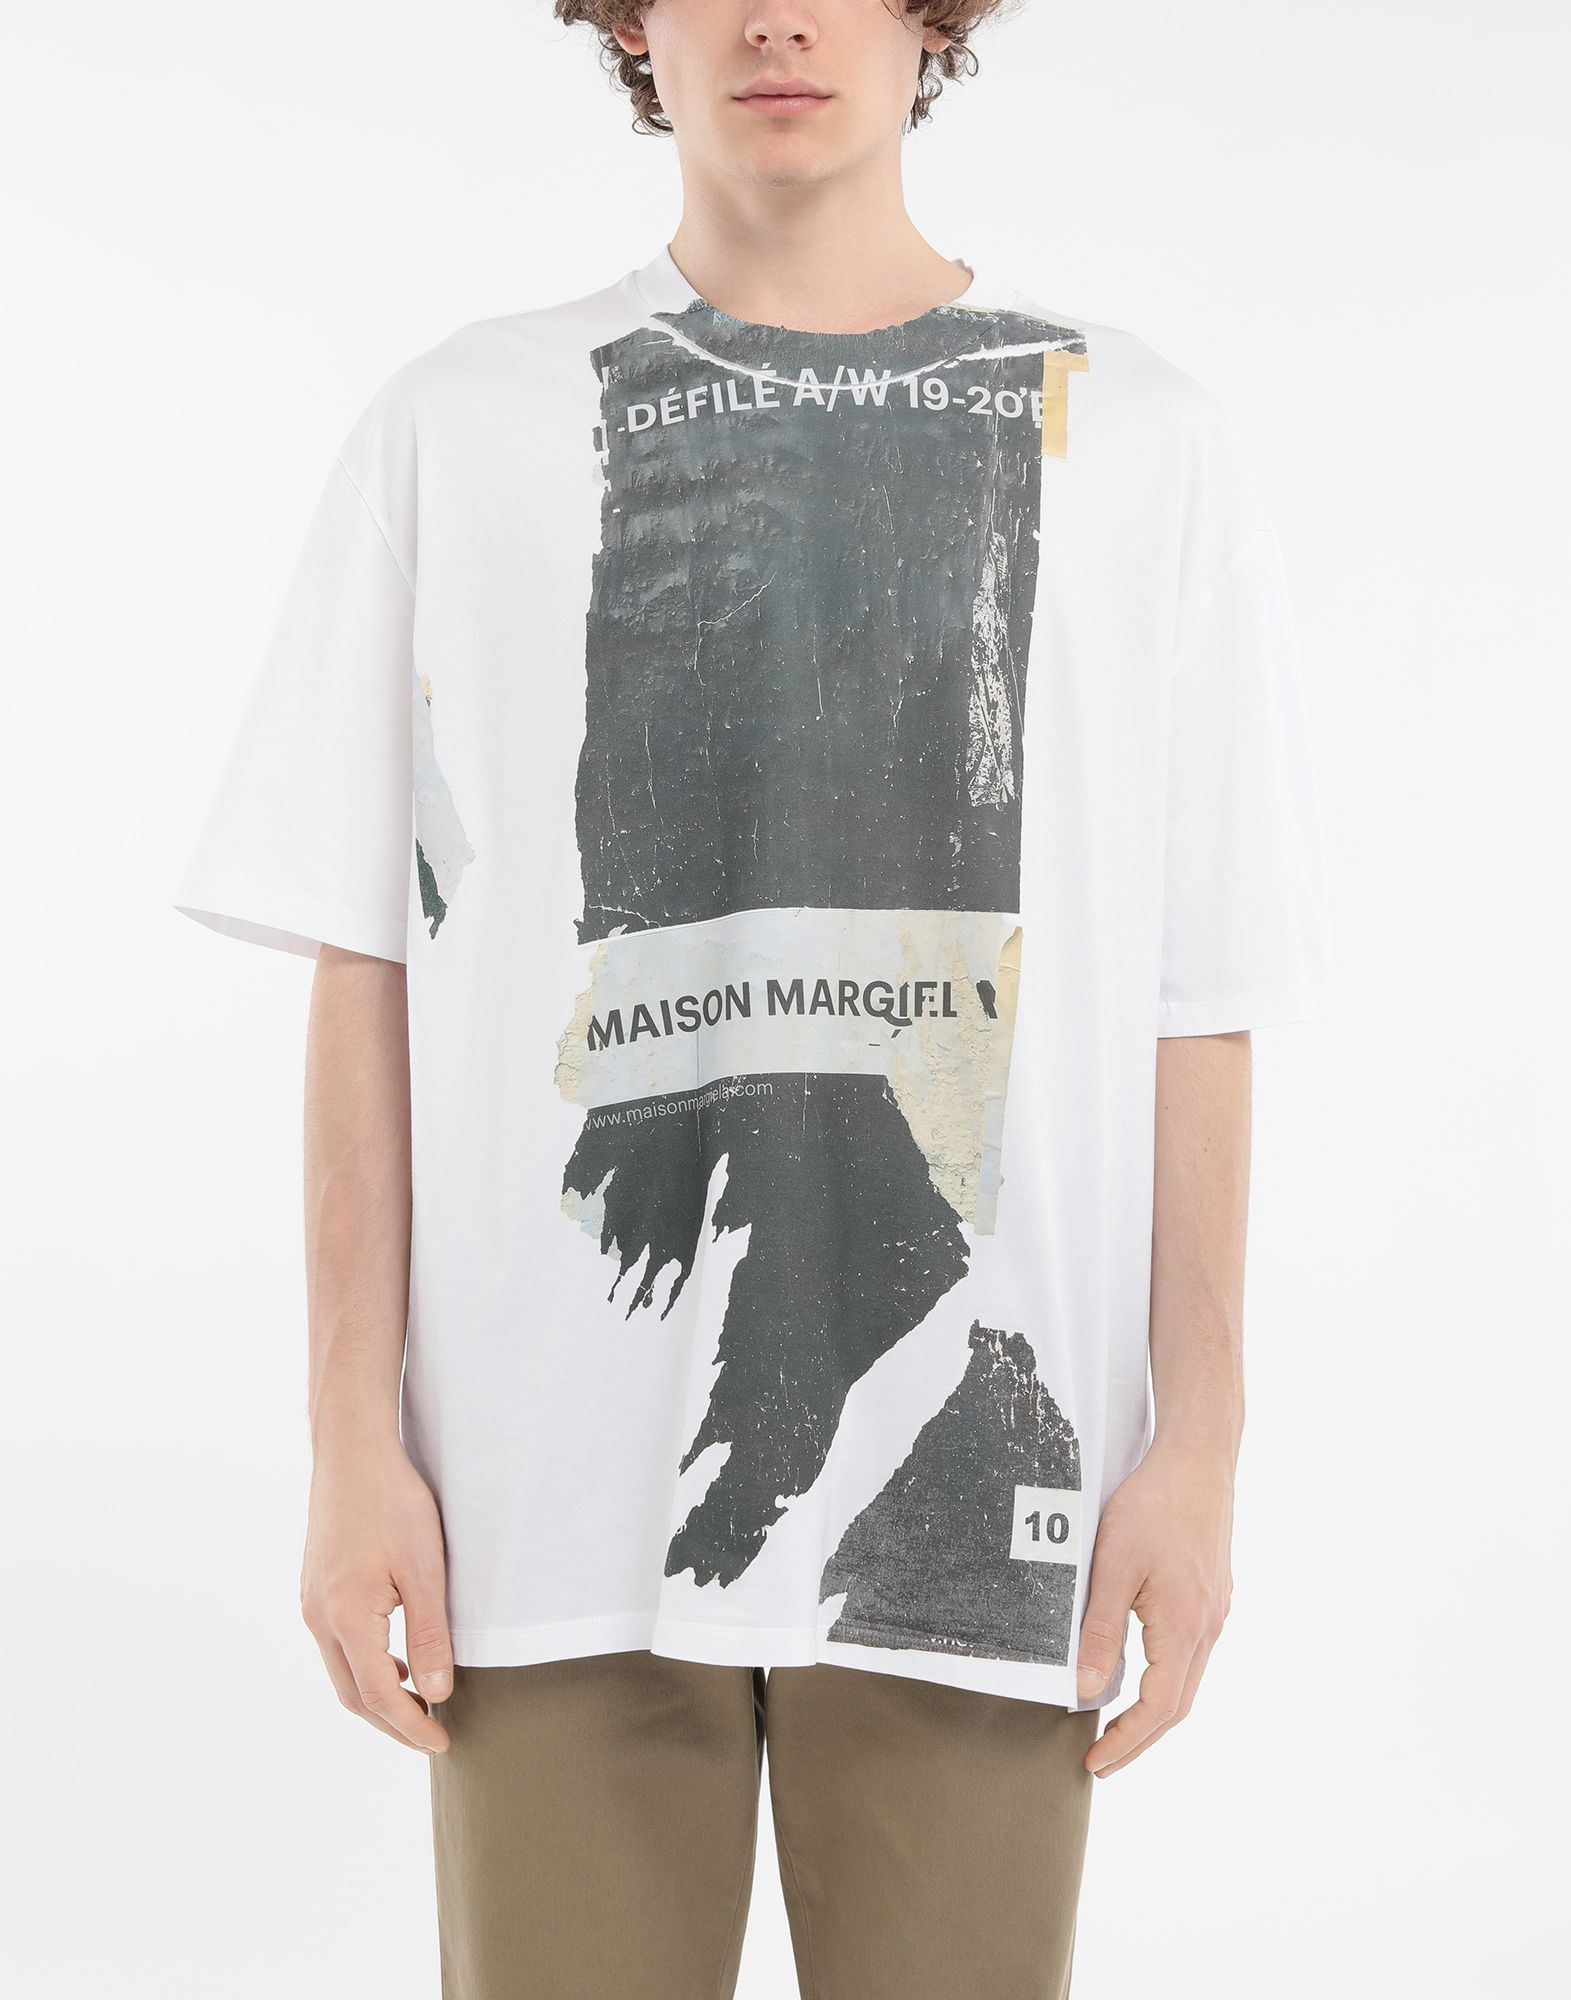 MAISON MARGIELA 'Défilé A/W' destroyed T-shirt Short sleeve t-shirt Man r